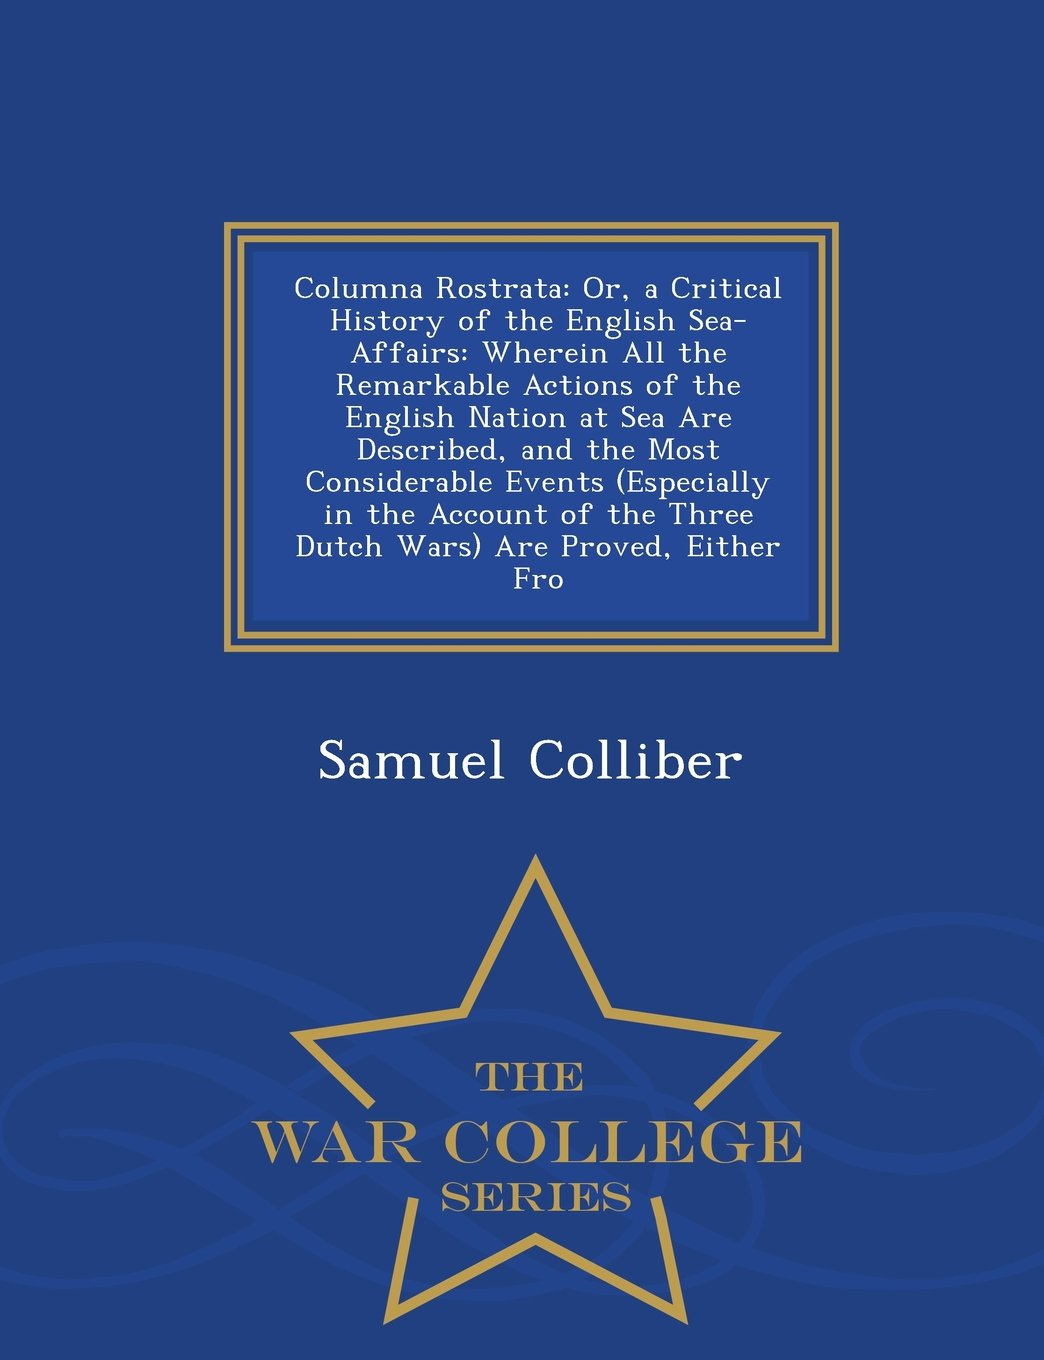 Read Online Columna Rostrata: Or, a Critical History of the English Sea-Affairs: Wherein All the Remarkable Actions of the English Nation at Sea Are Described, ... the Three Dutch Wars) Are Proved, Either Fro pdf